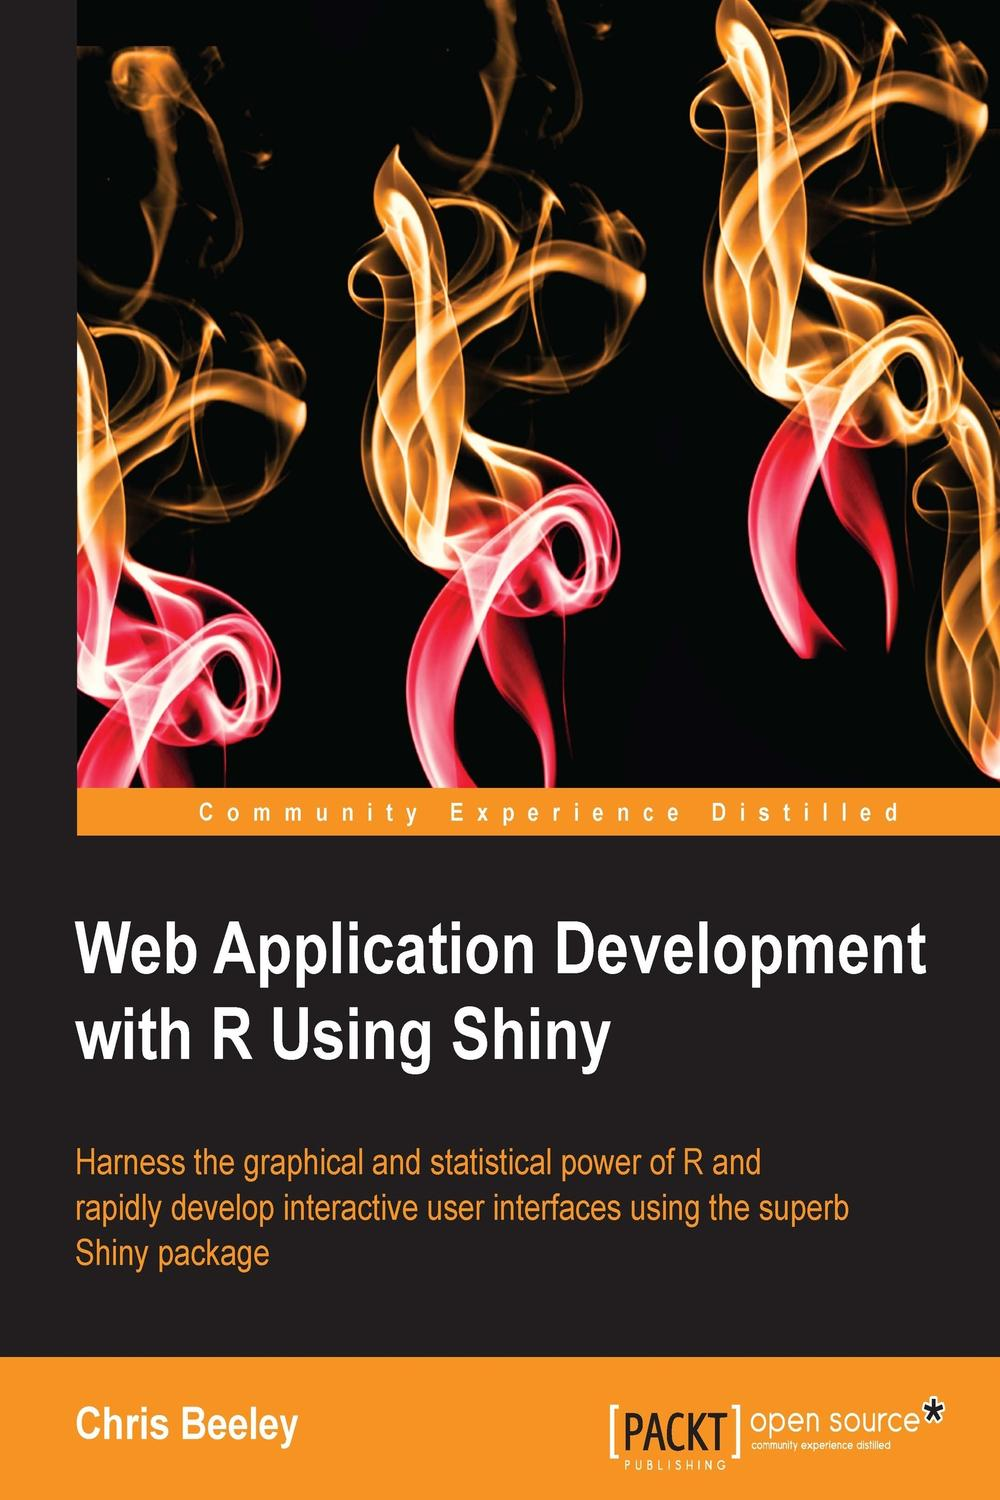 Web Application Development with R using Shiny by Chris